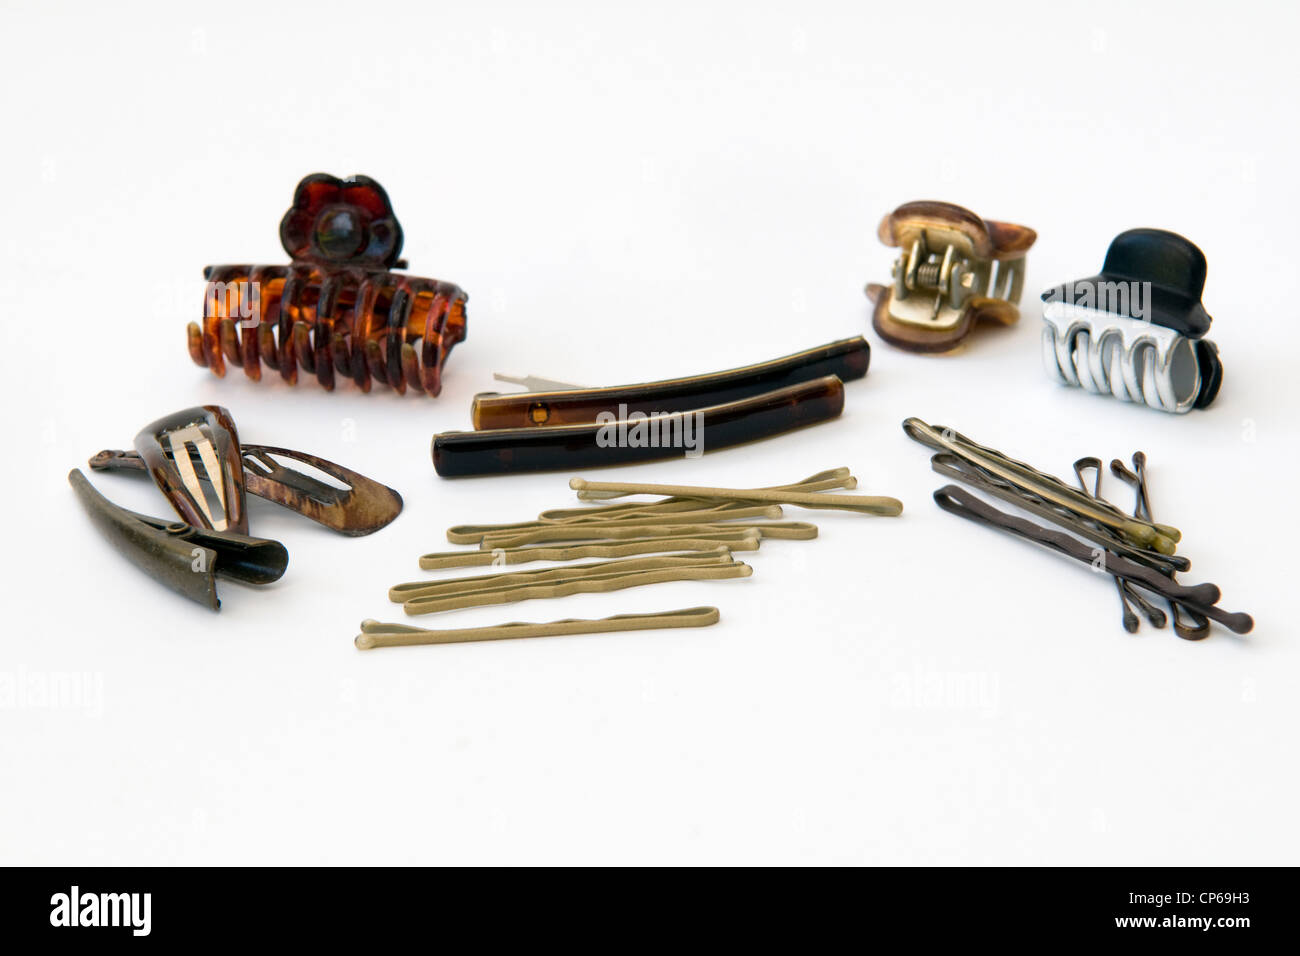 Selection of hair grips and clips against a white background - Stock Image